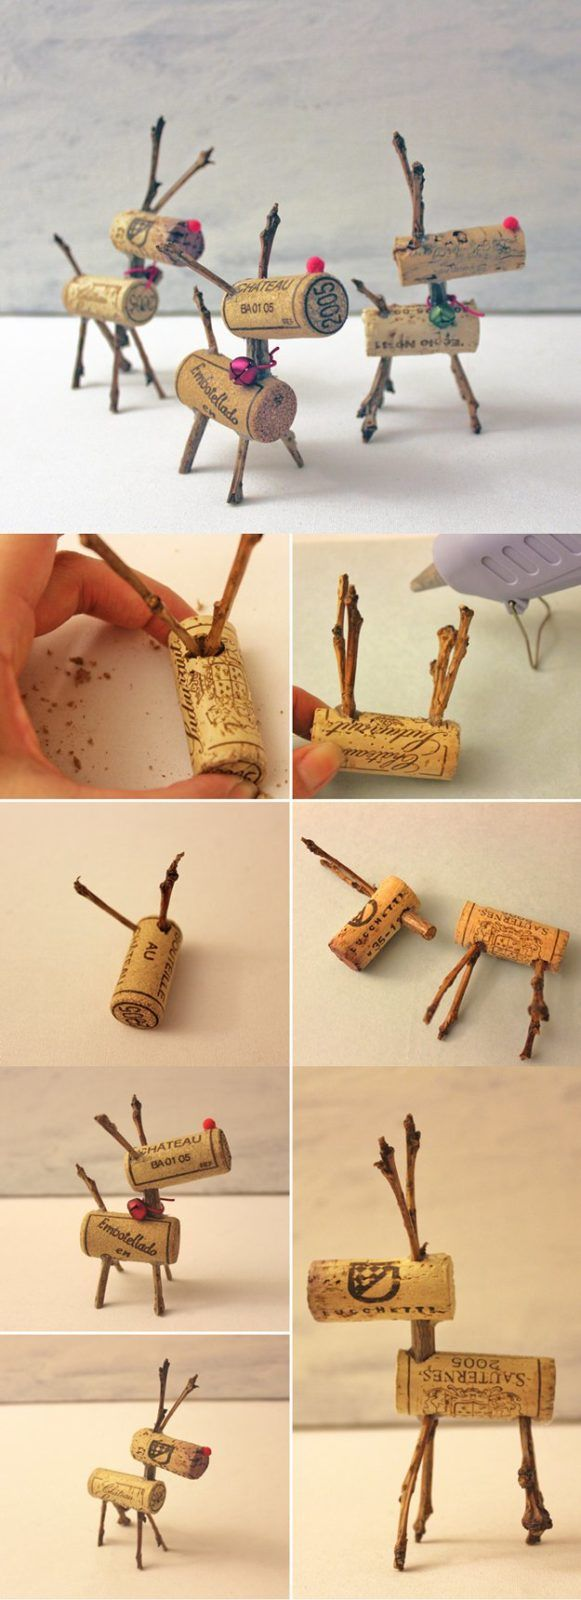 Easy DIY Wine Cork Decor Project | https://diyprojects.com/more-wine-cork-crafts-ideas/